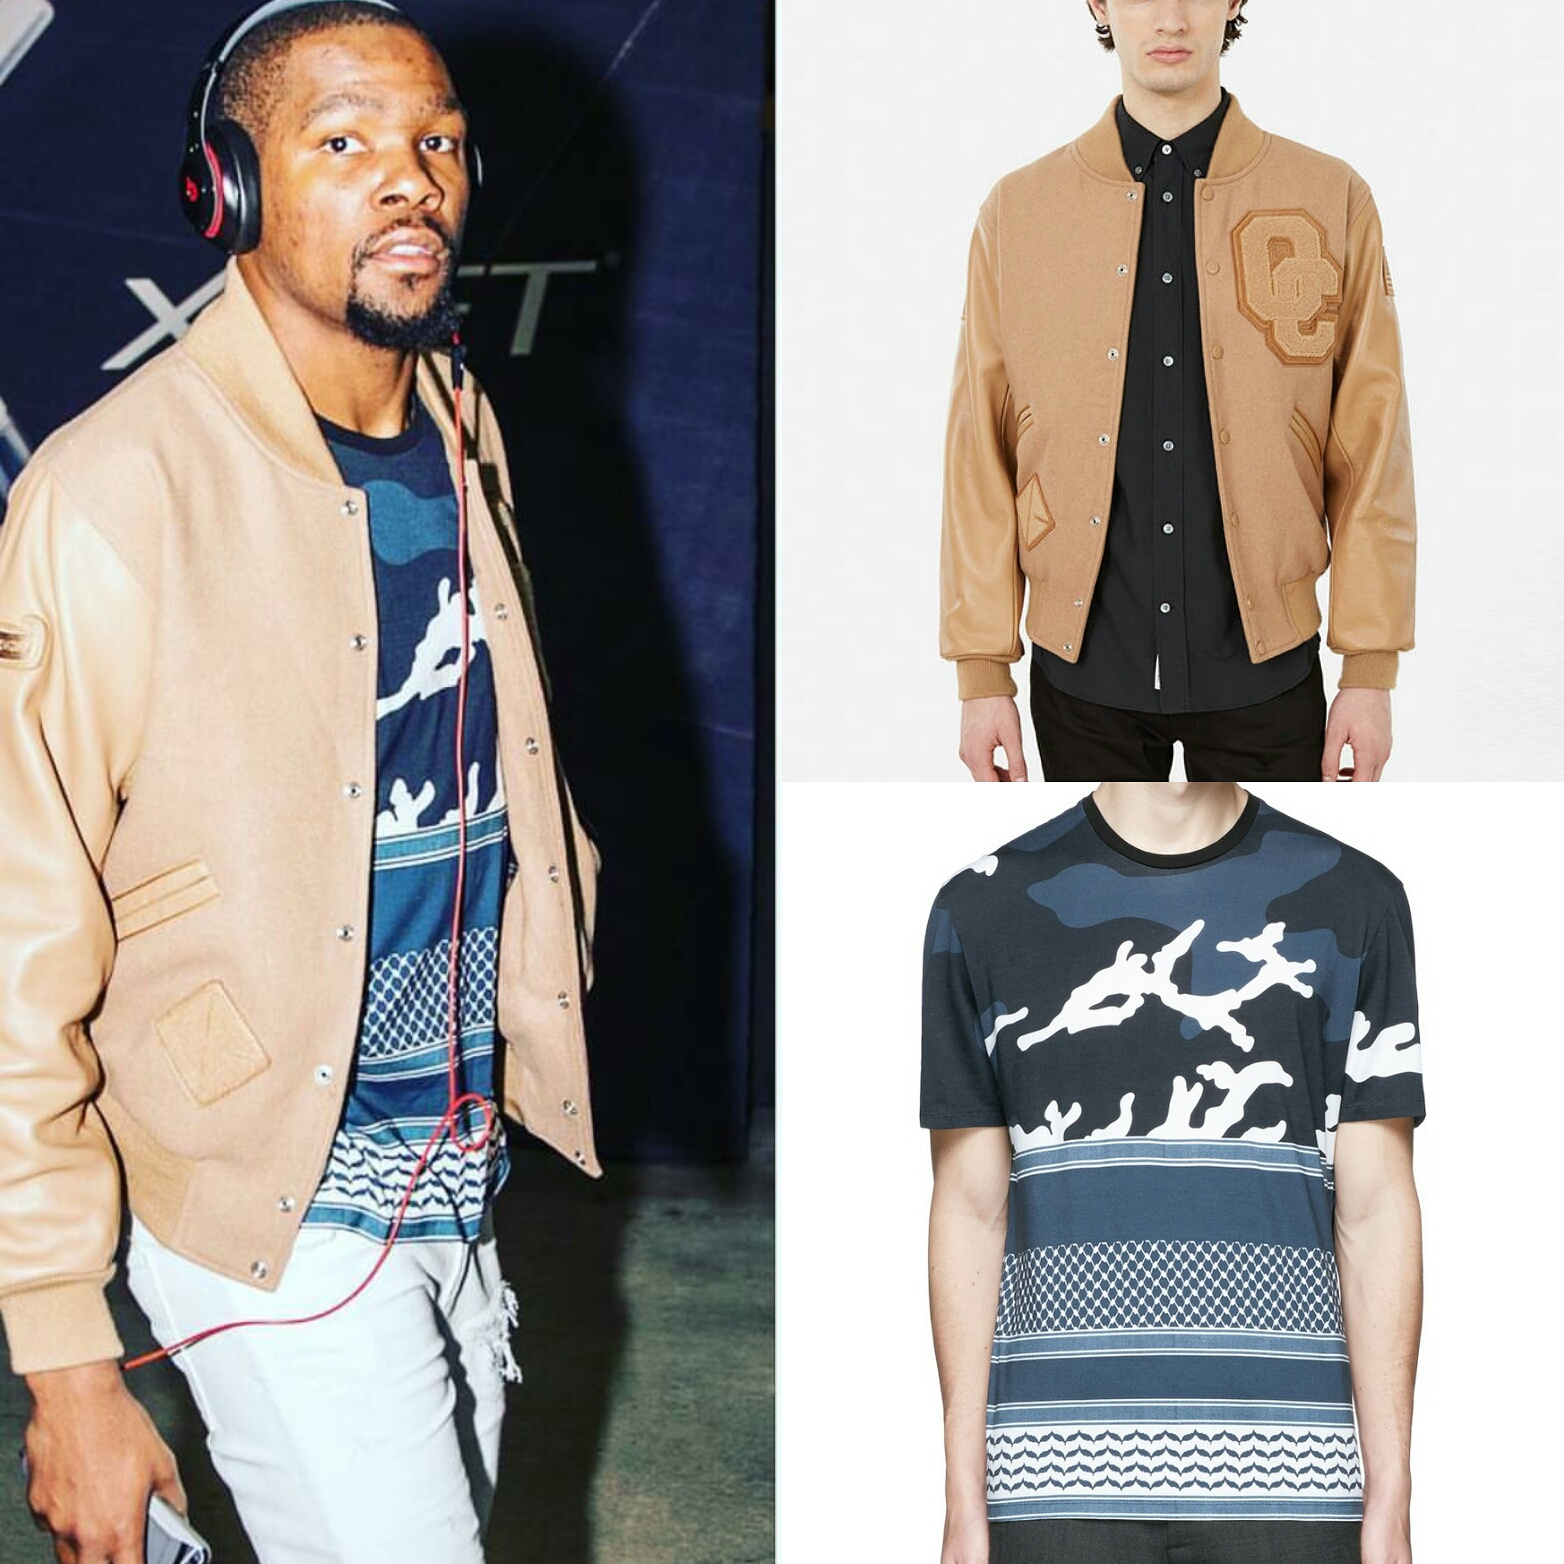 STYLE: Kevin Durant's Opening Ceremony Varsity Jacket And Neil Barrett Mix Printed Shirt